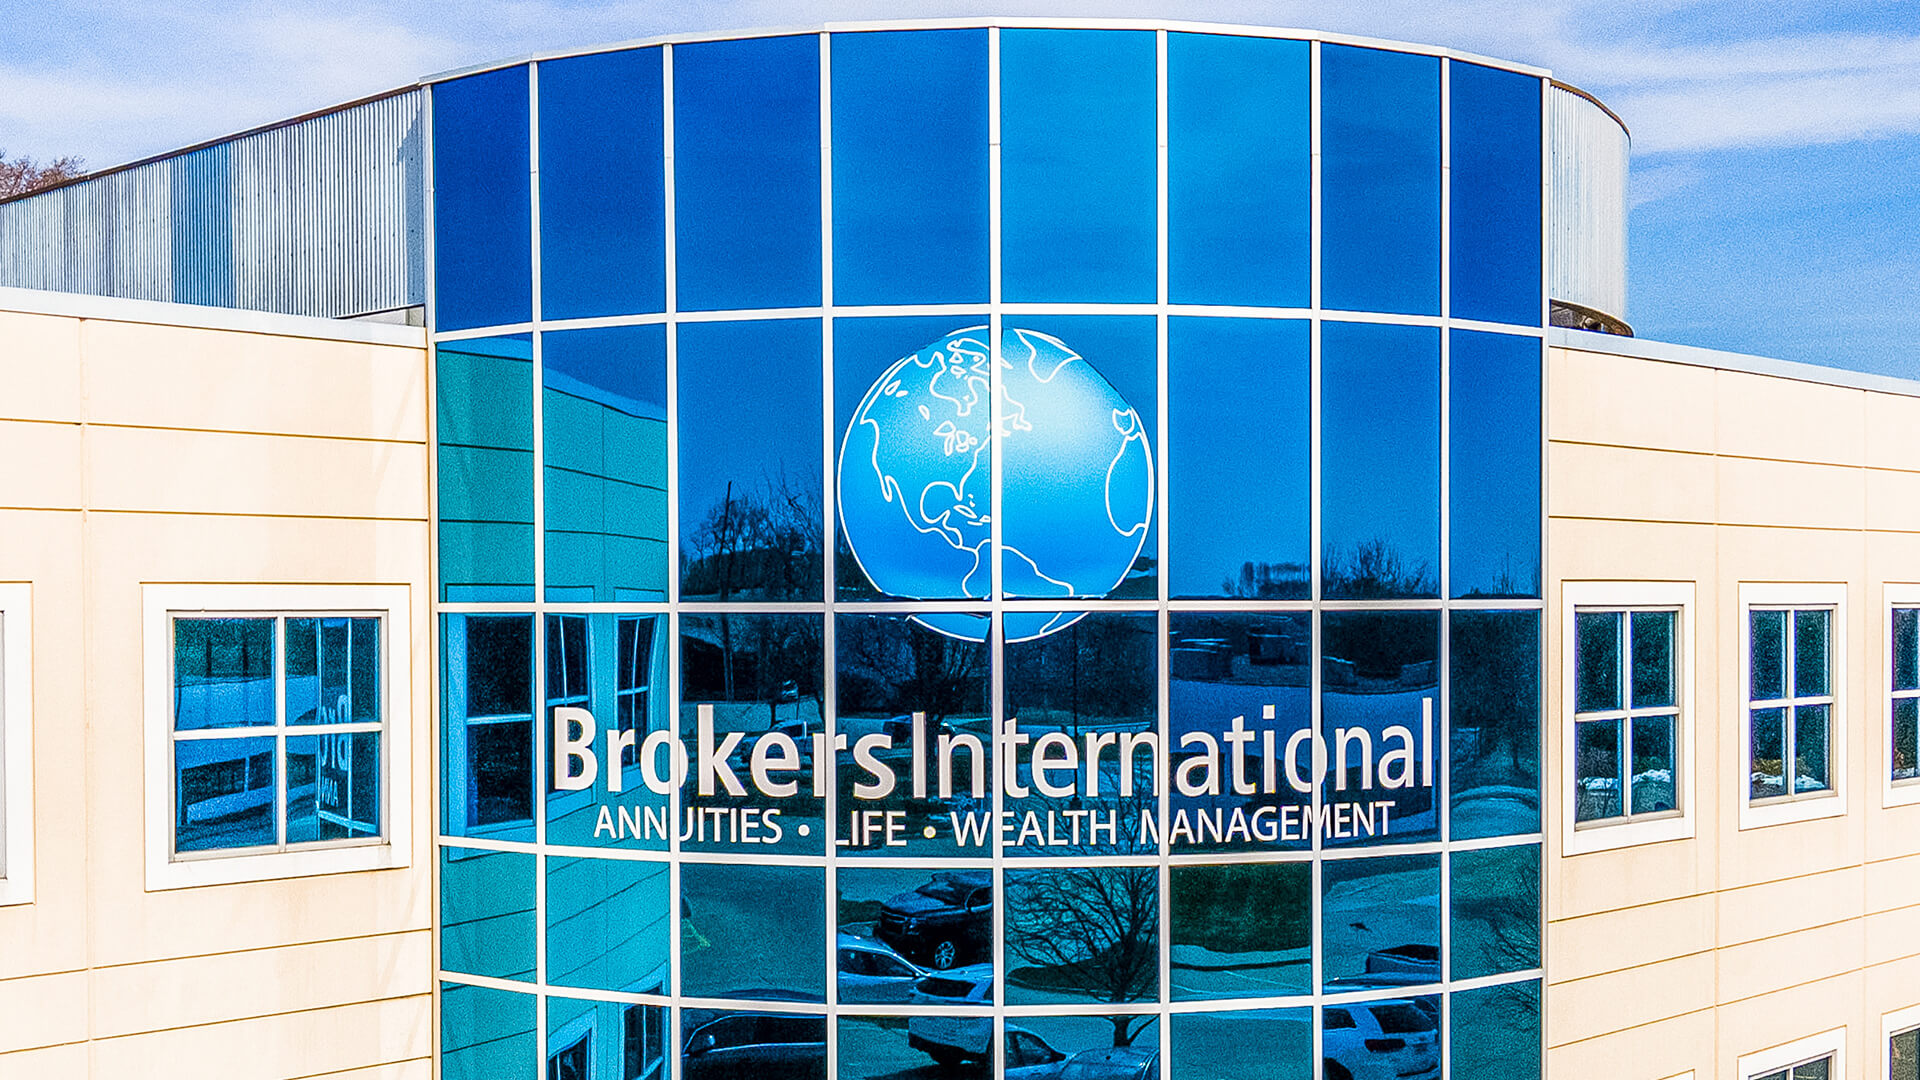 Integrity Acquires Brokers International — An Iconic Leader in Life, Annuities and Wealth Planning